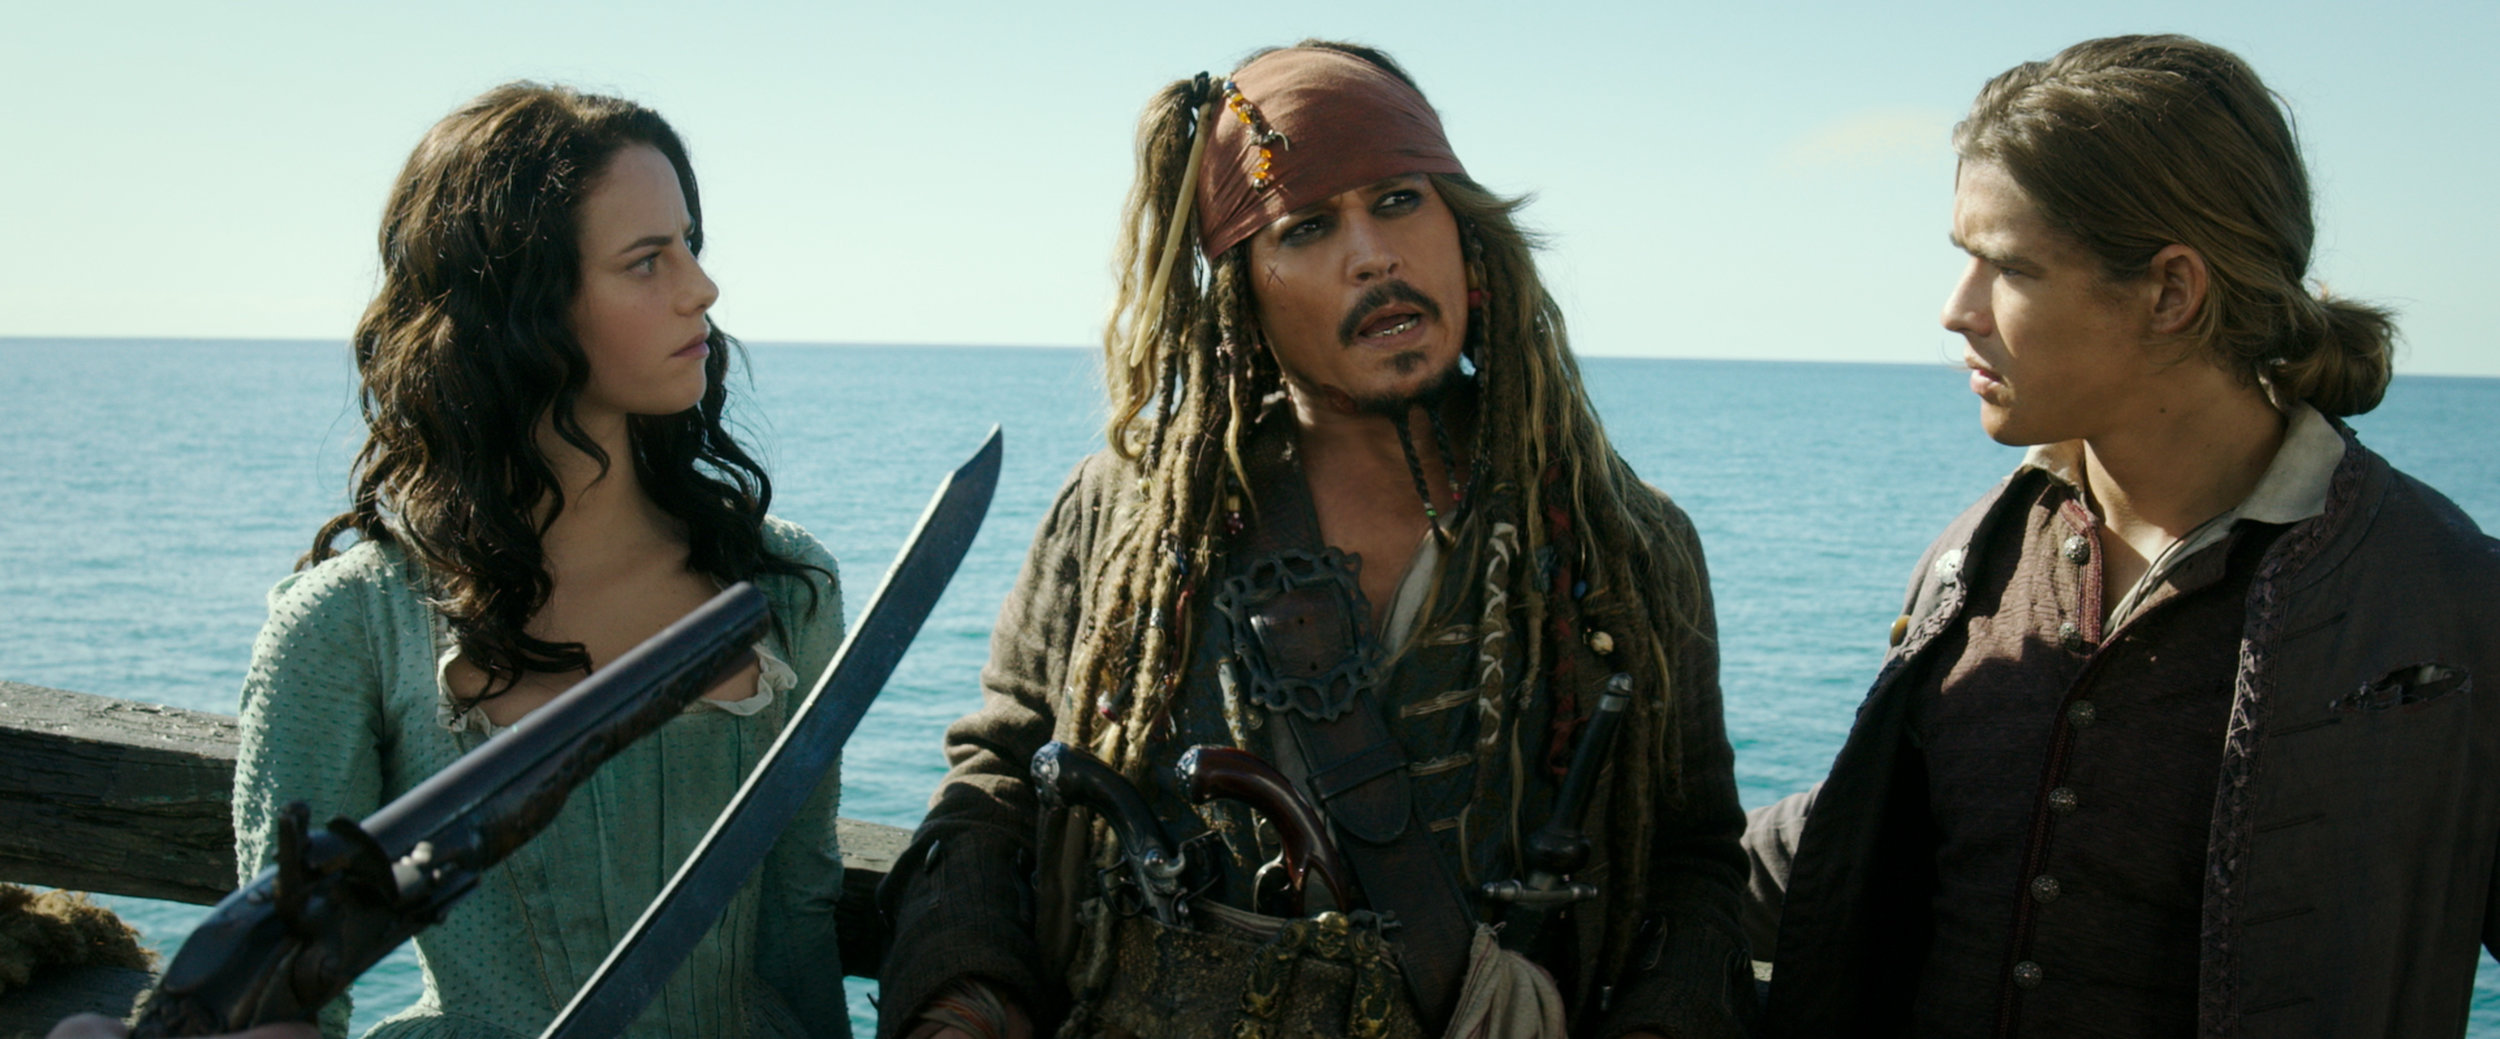 Jack Sparrow (Depp) along with newcomers Henry (Thwaites)and Carina (Scodelario).